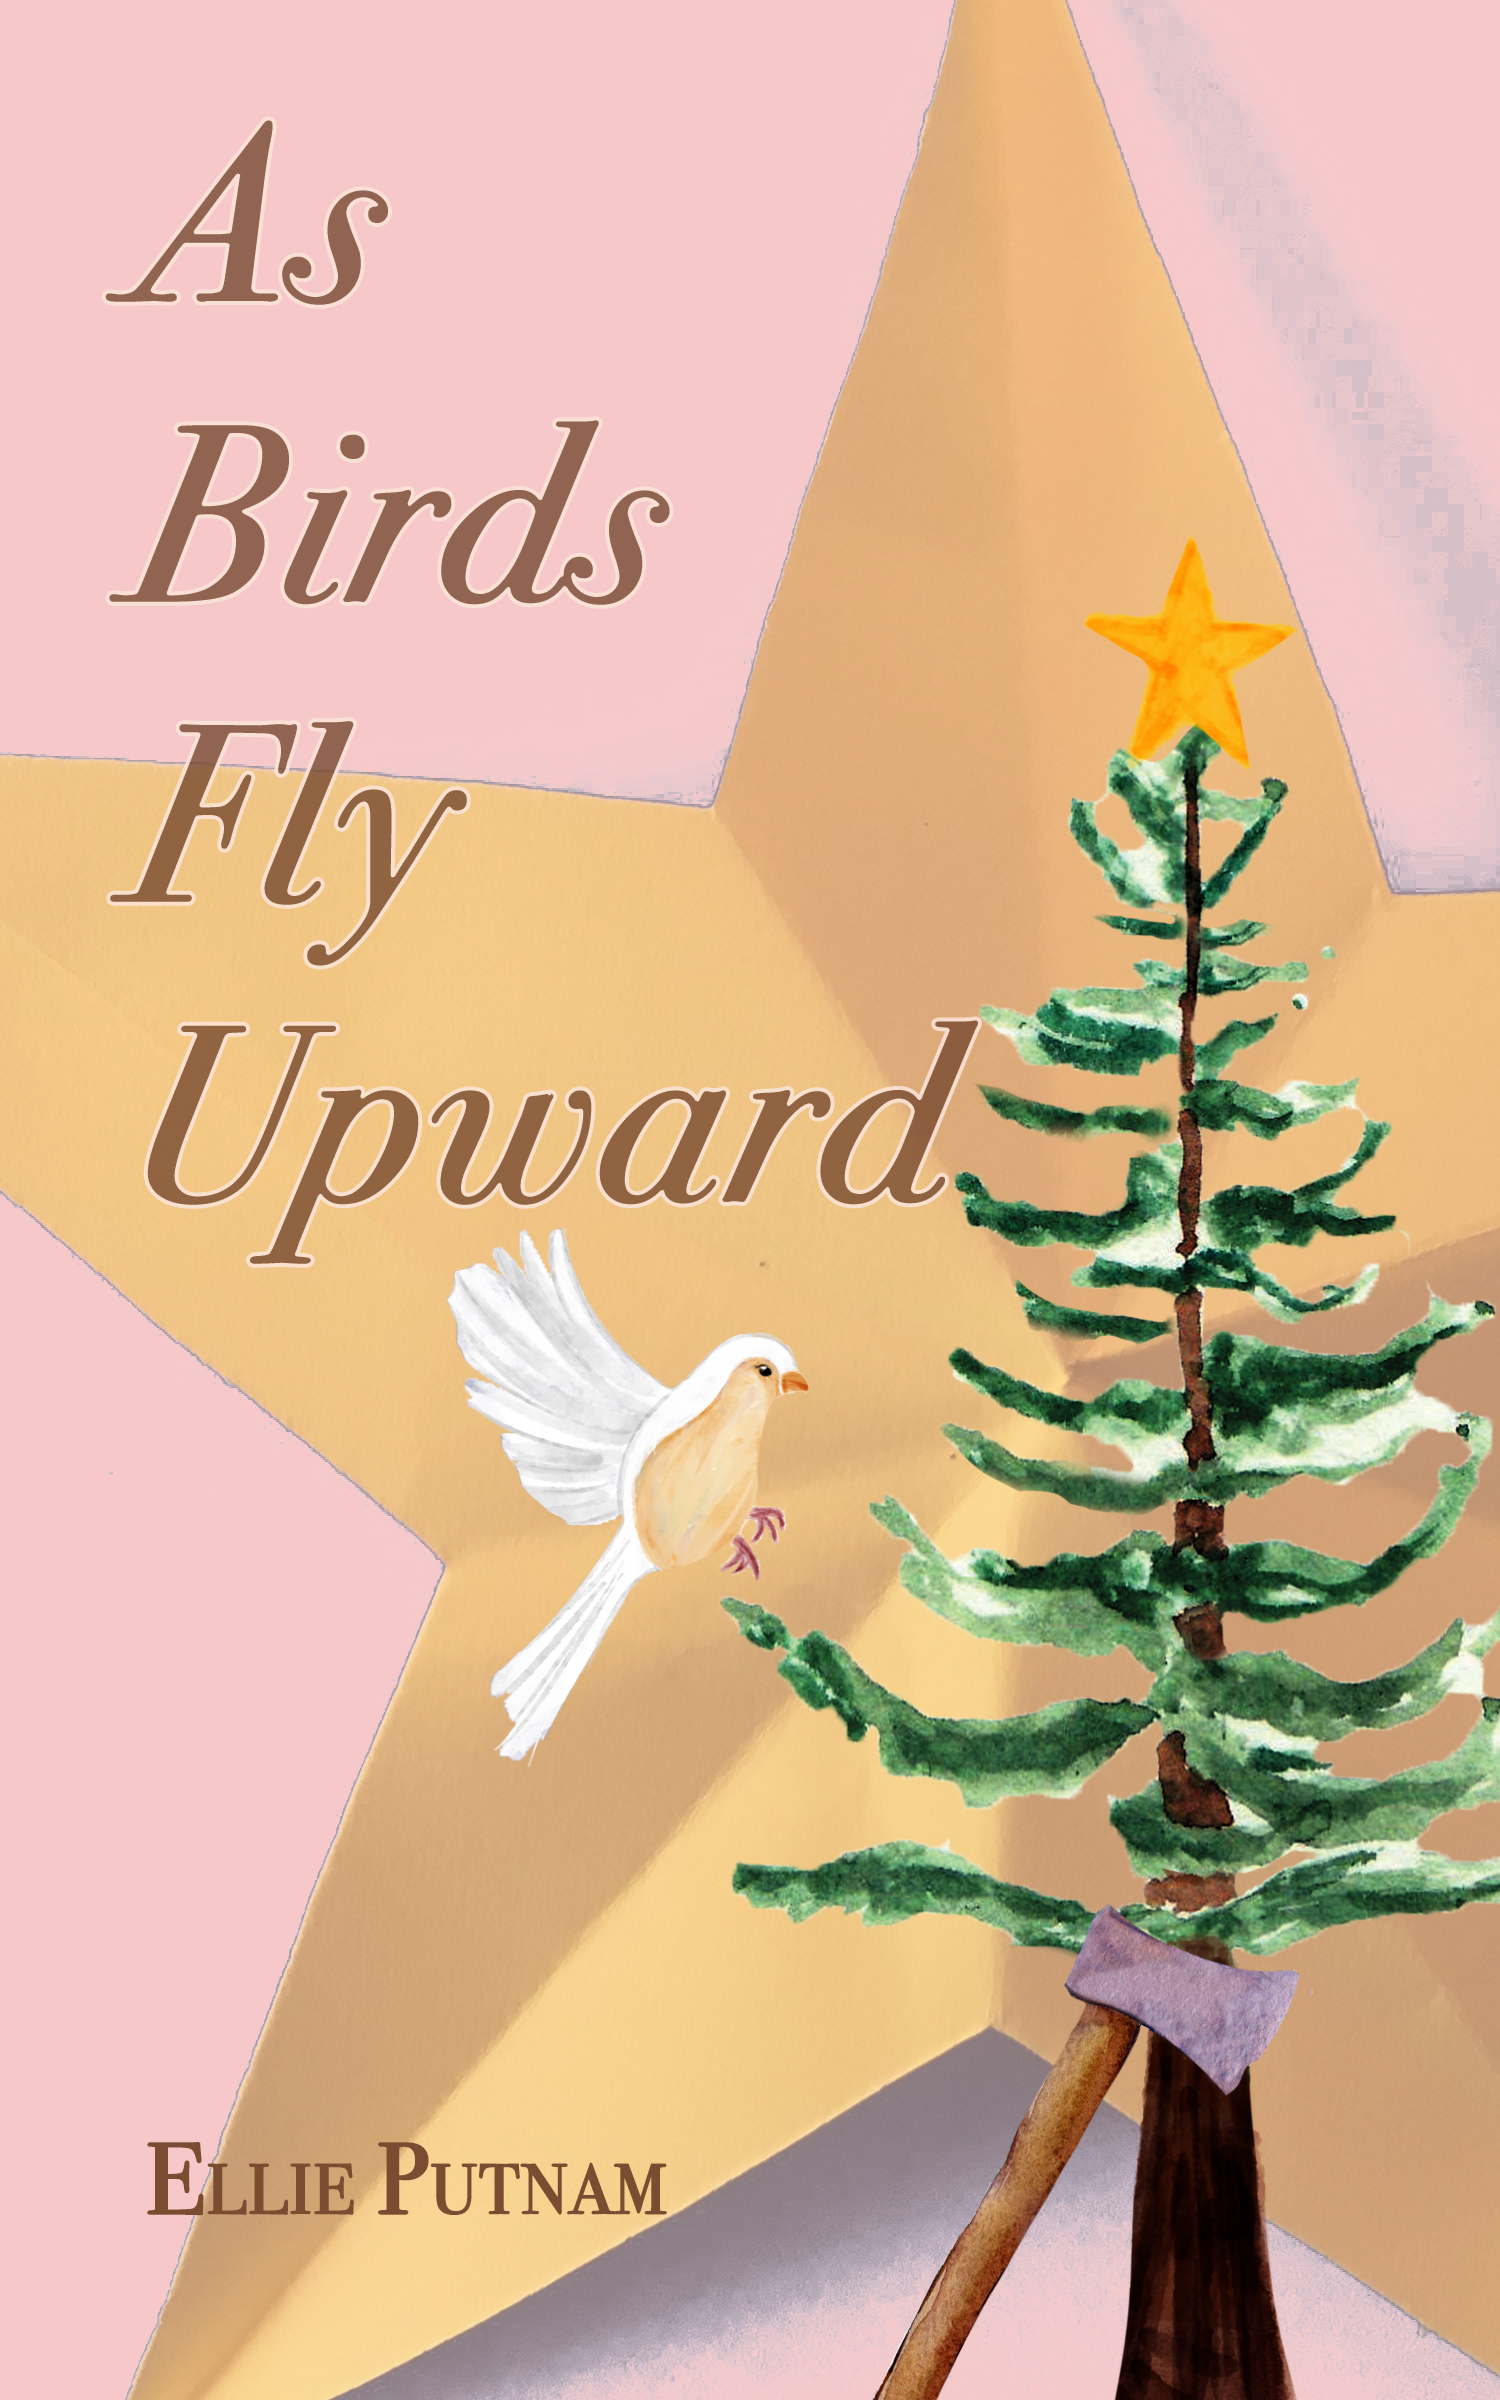 Available Now! - As Birds Fly Upward is Ellie Putnam's debut novel.Click the button below to download and read the first chapters for free.